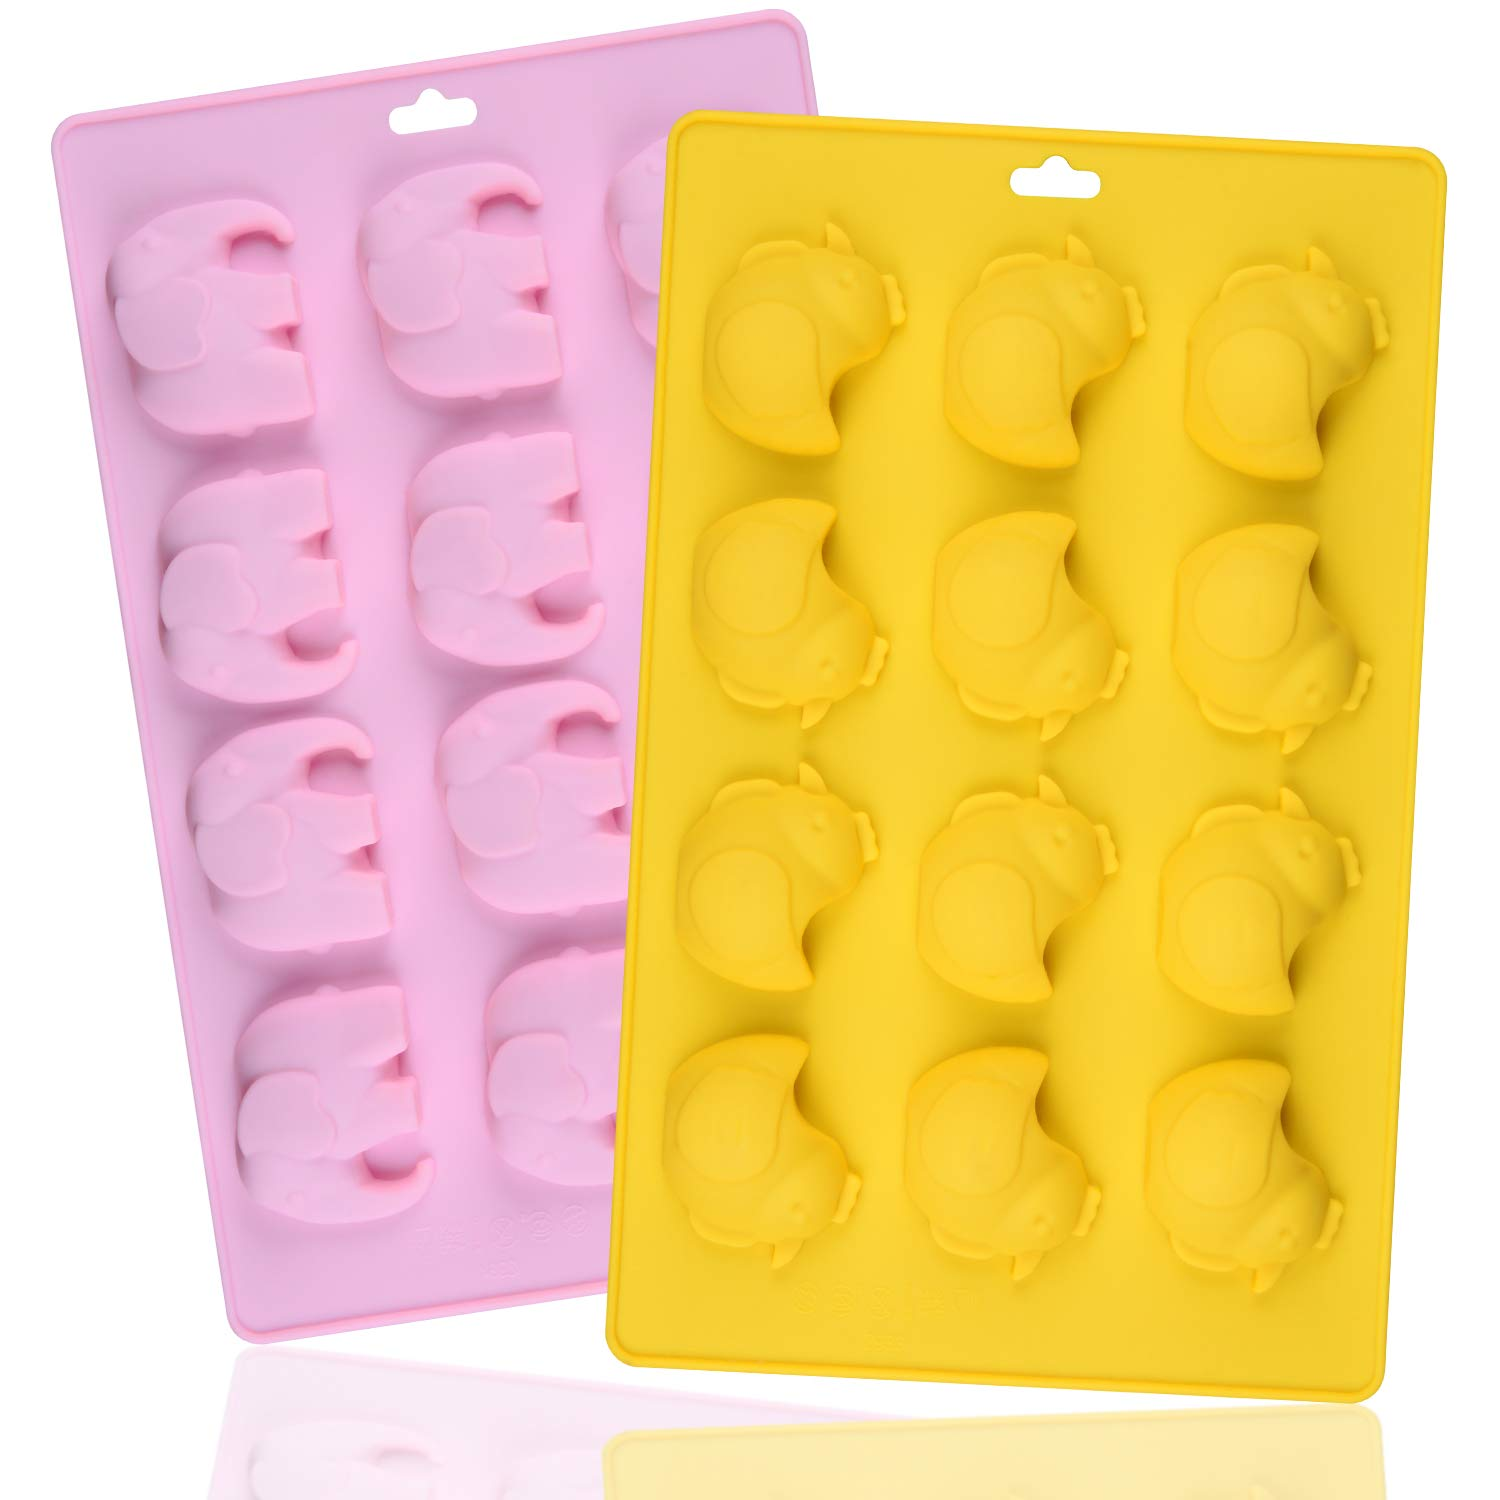 Silicone Candy Molds, SJ Silicone Elephant and Chicken Chocolate Molds, Non-stick Animal Molds for Jelly, Biscuits, Chocolate, Candy, Cupcake, BPA Free, Pack of 2